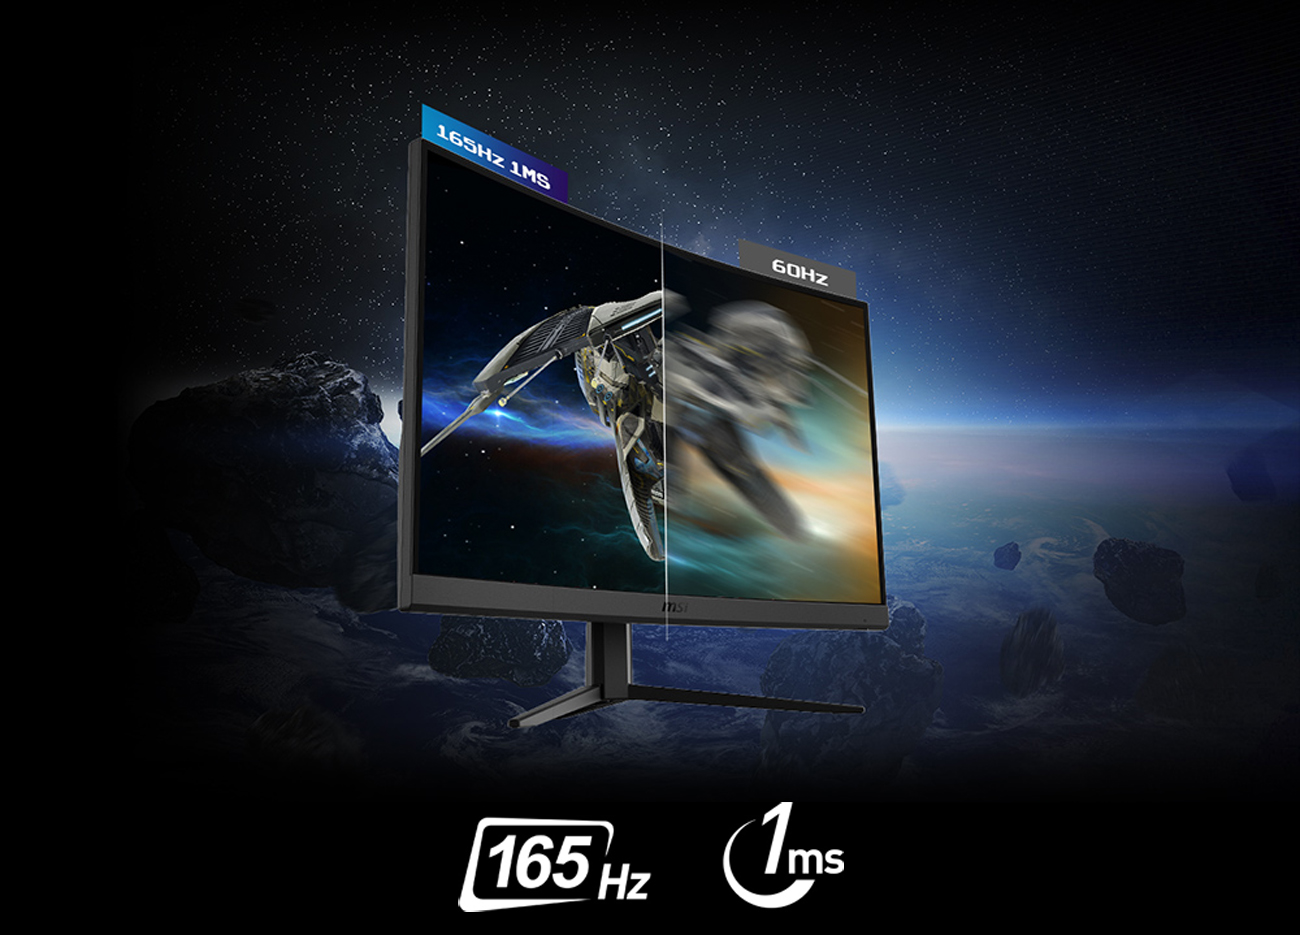 165HZ REFRESH RATE + 1MS RESPONSE TIME